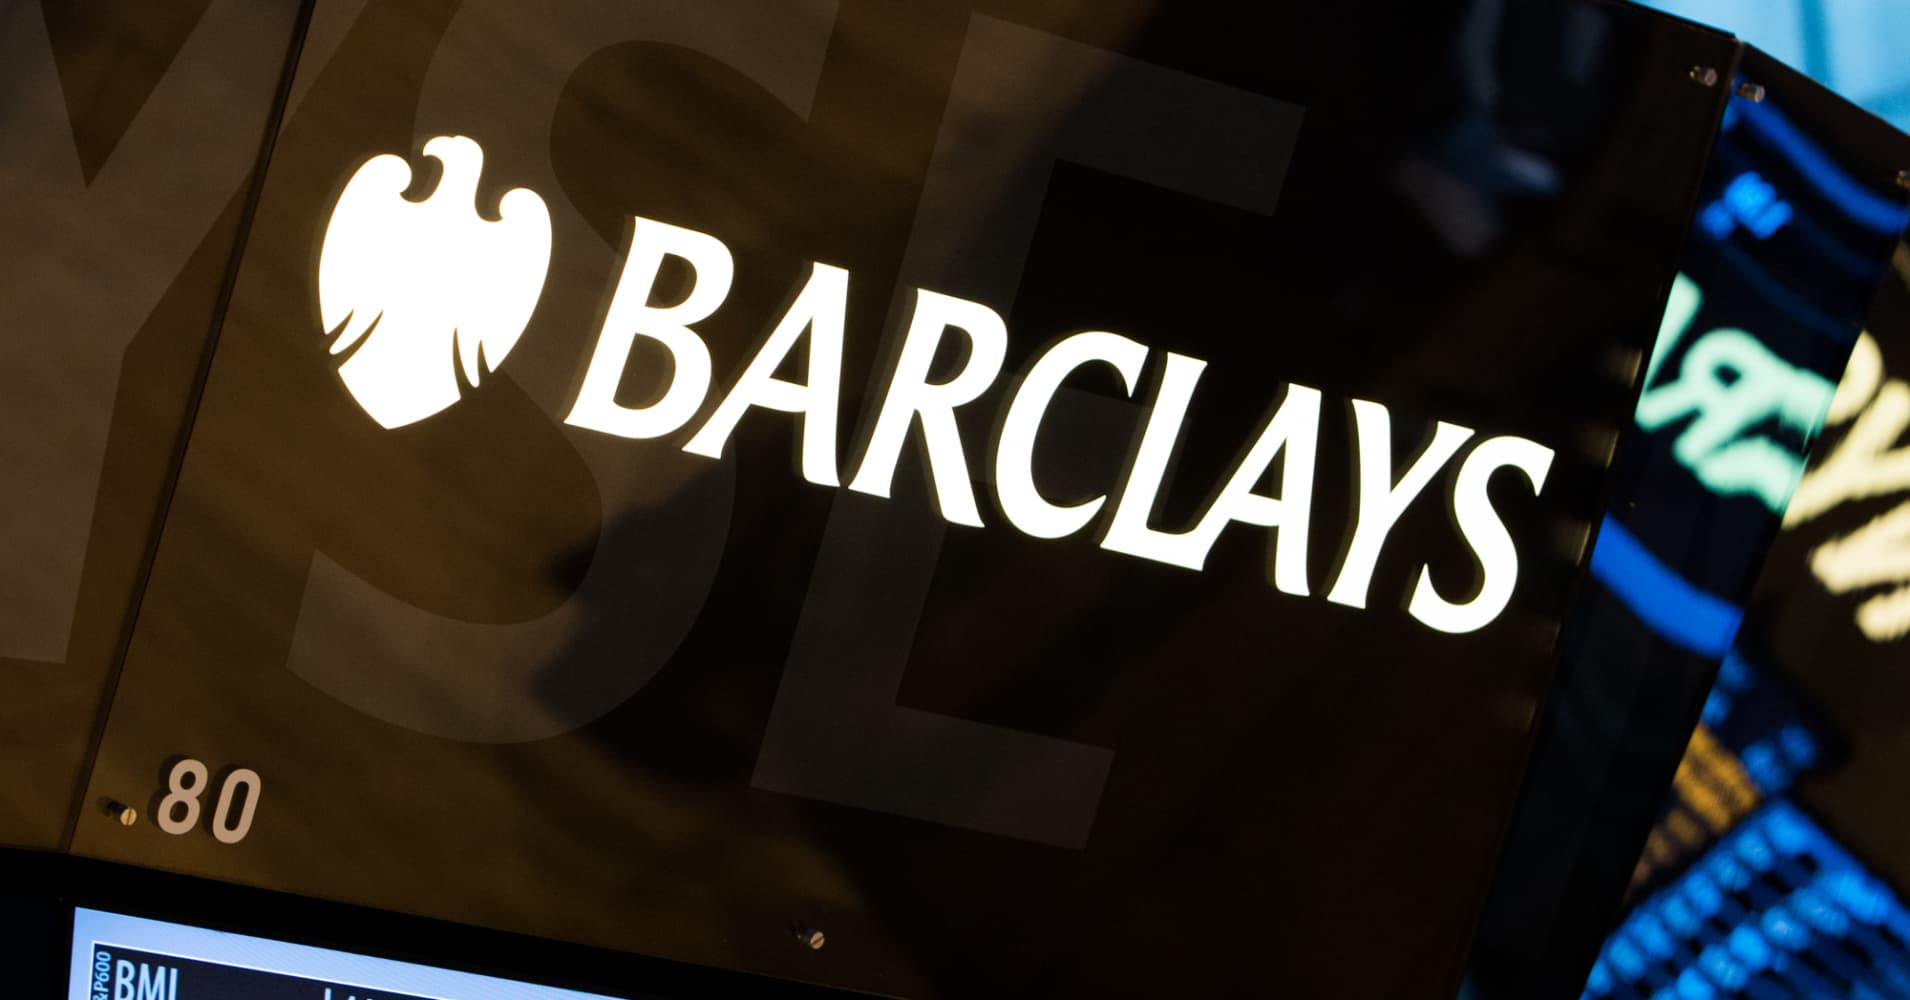 Barclays Quotes: Barclays Analyst Arrested On Charges Of Cat Torture